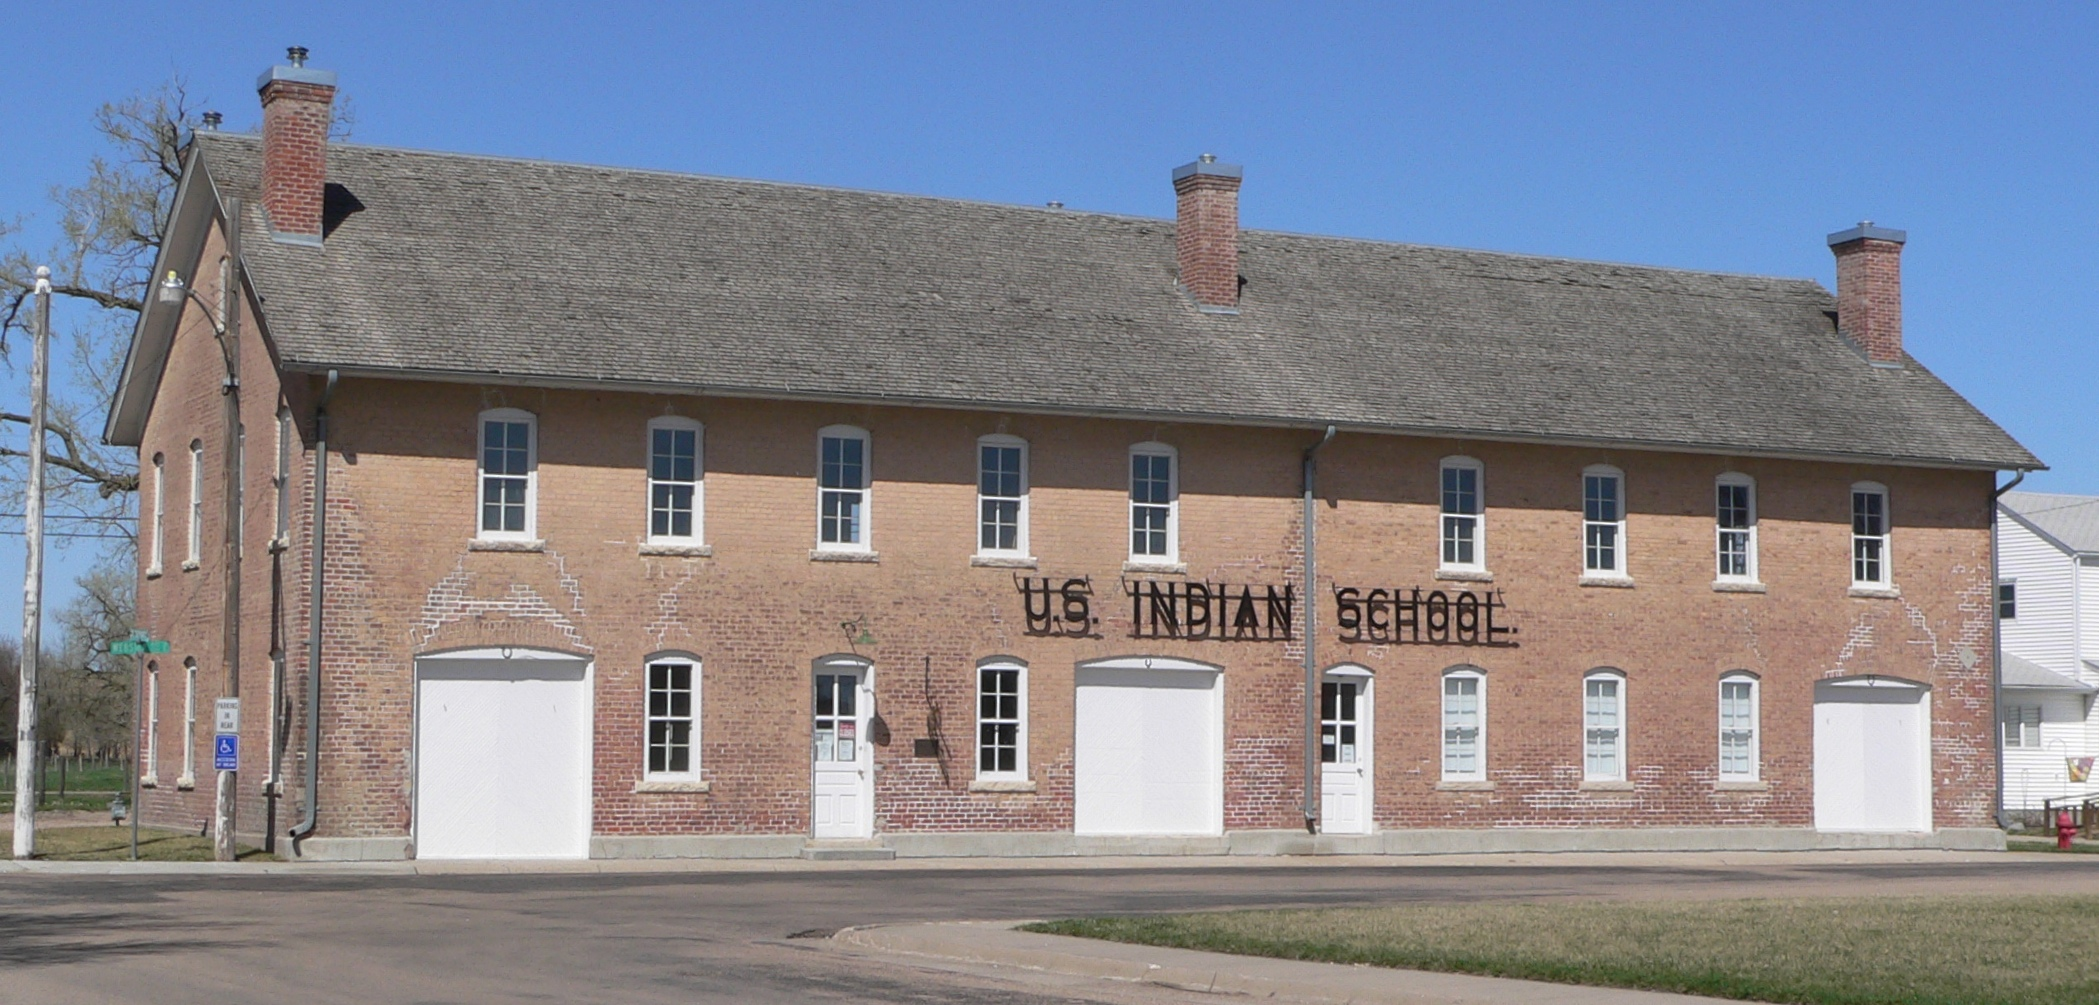 Former Genoa Manual Training Building, Current Genoa Indian School Museum.